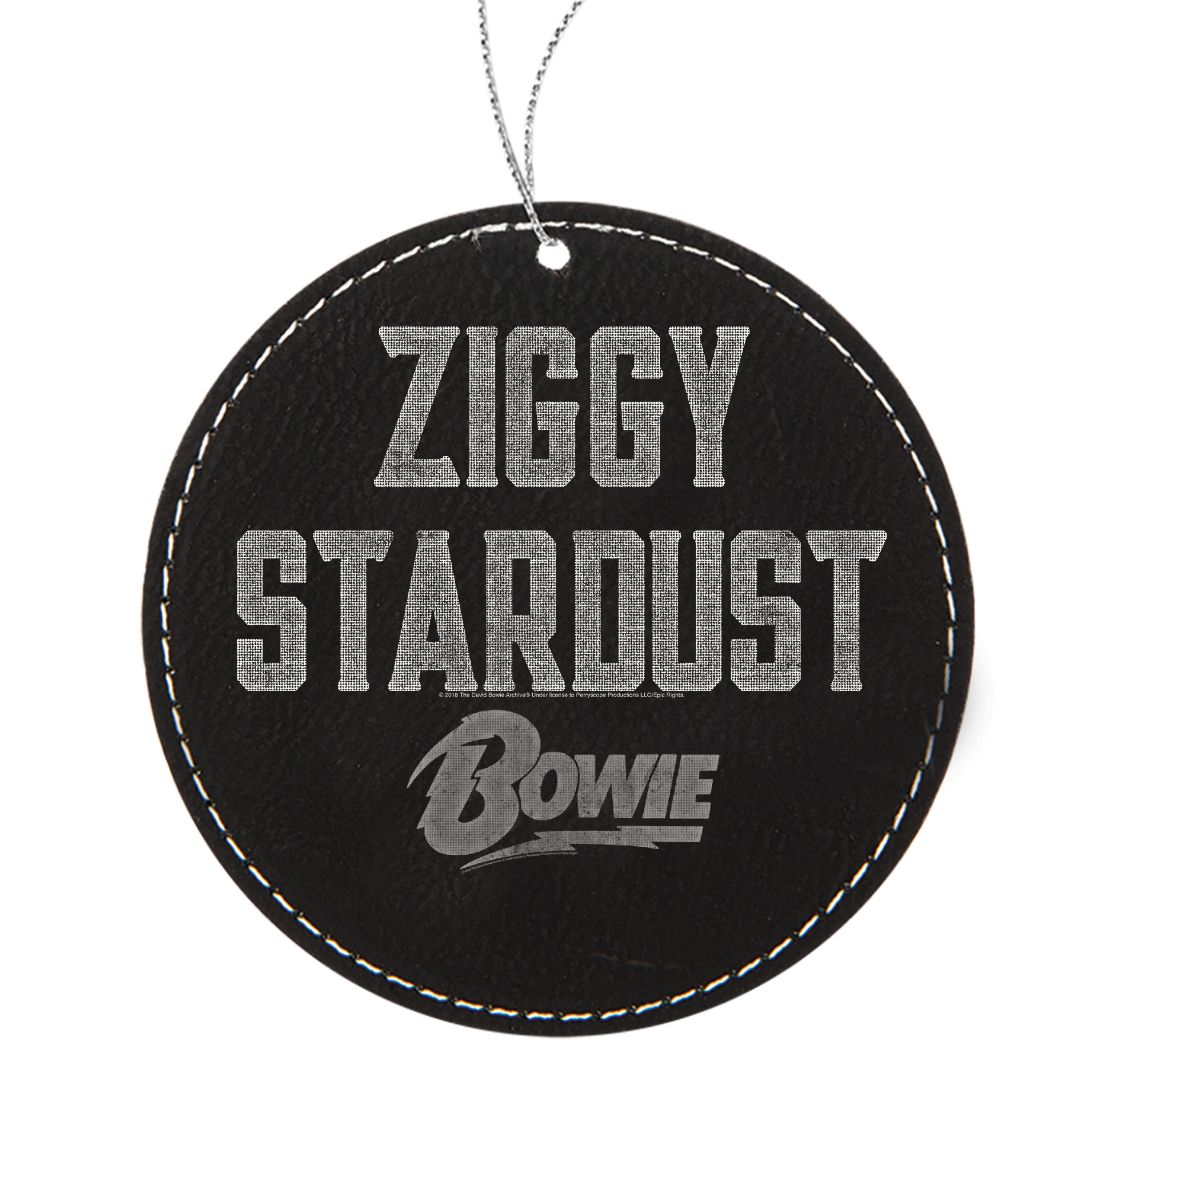 Ziggy Stardust Holiday Ornament